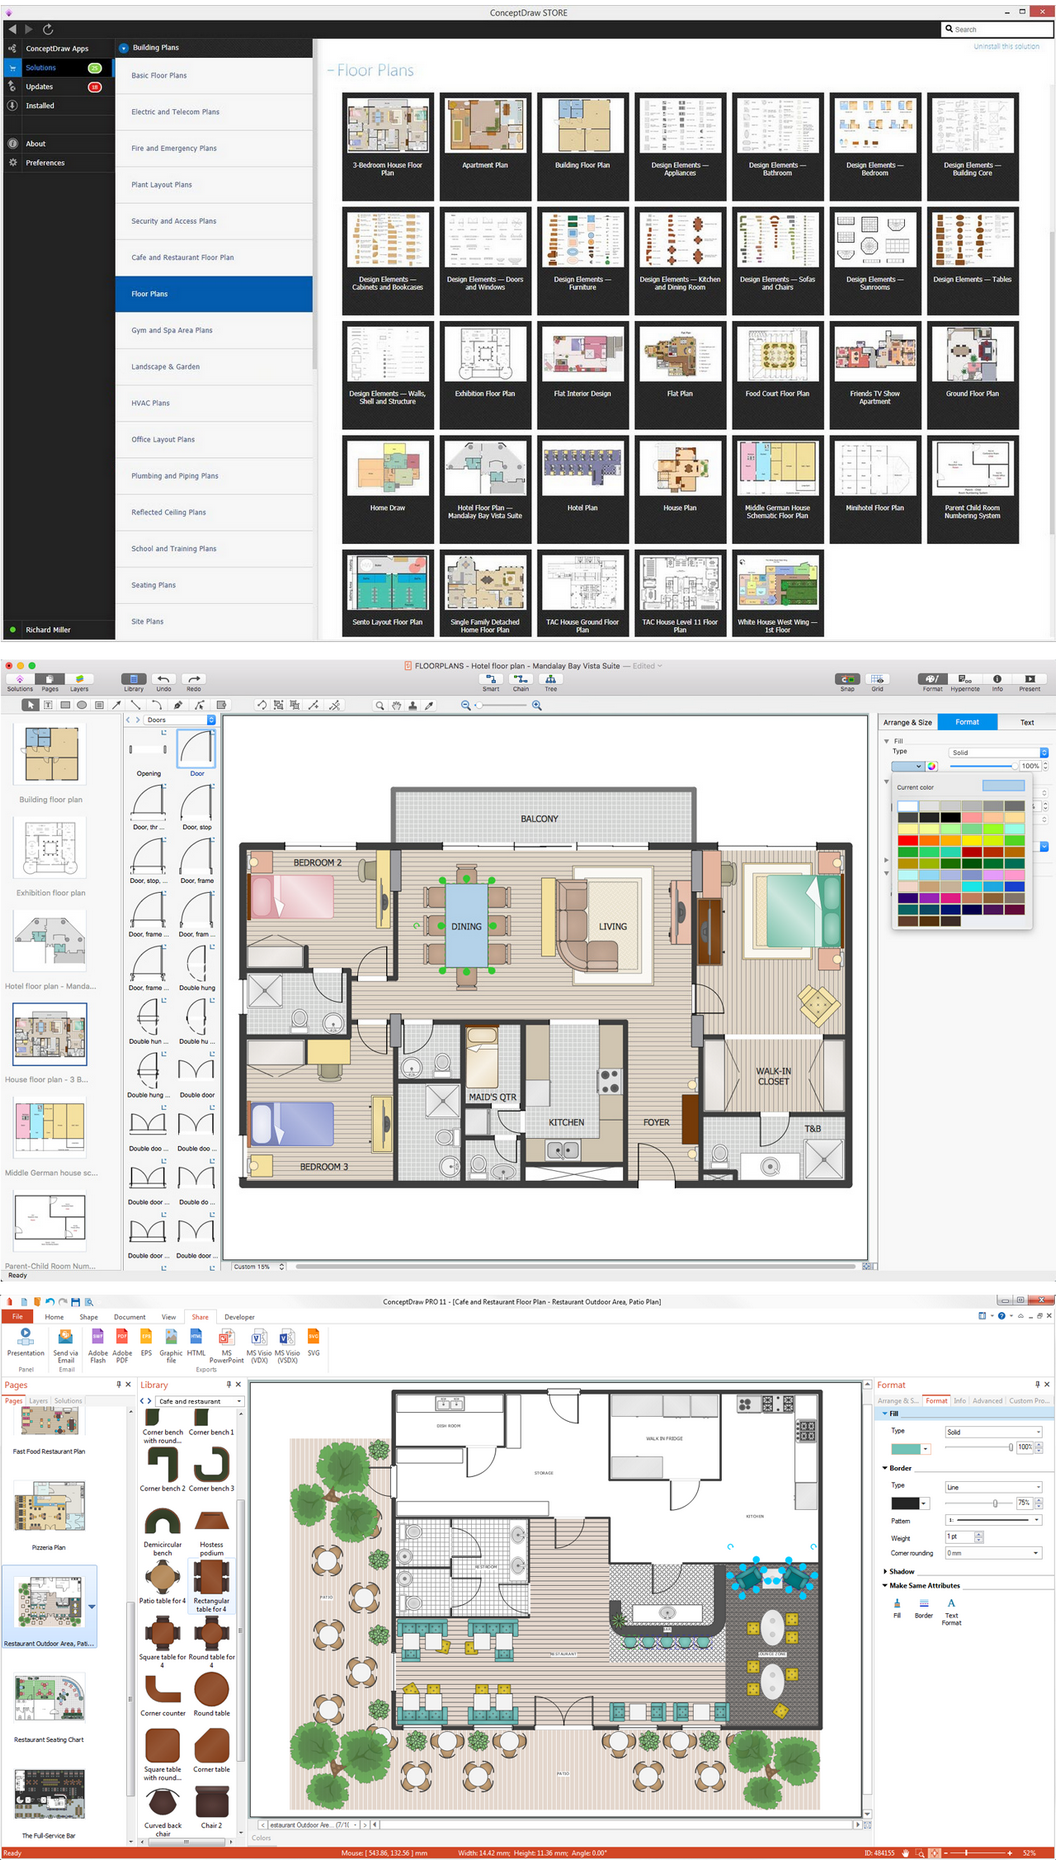 Building Plans with ConceptDraw DIAGRAM